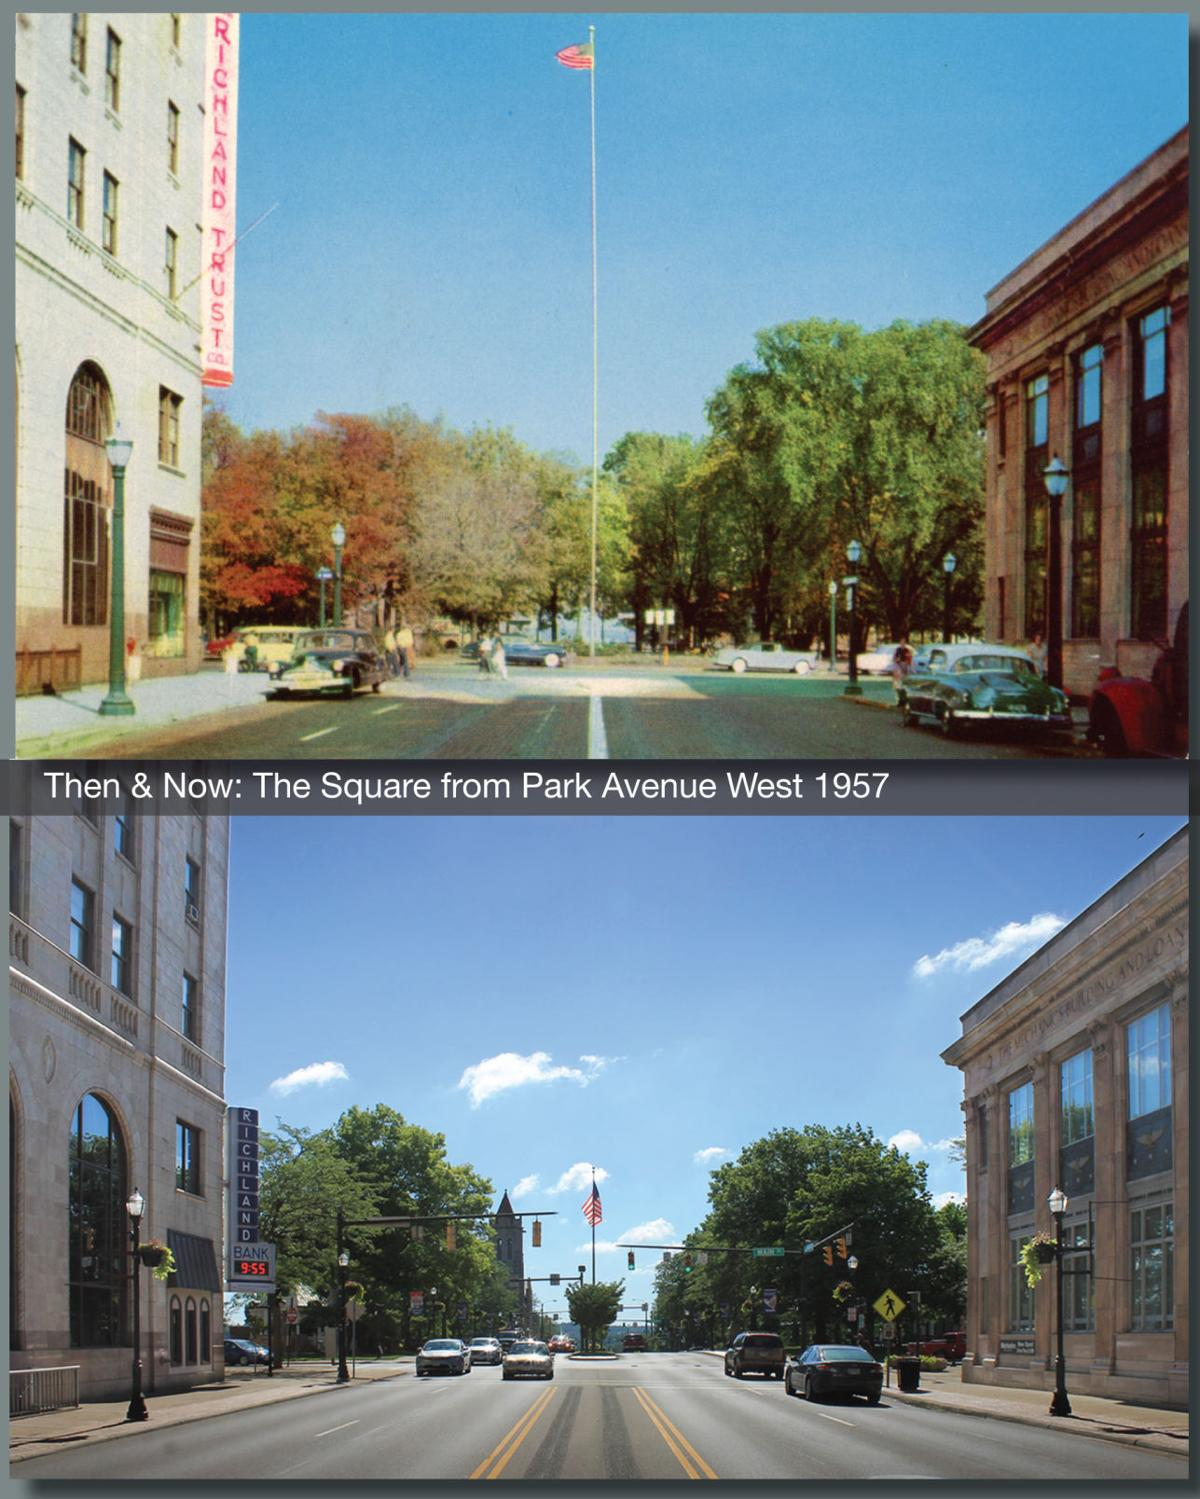 Then & Now: The Square from Park Avenue West 1957